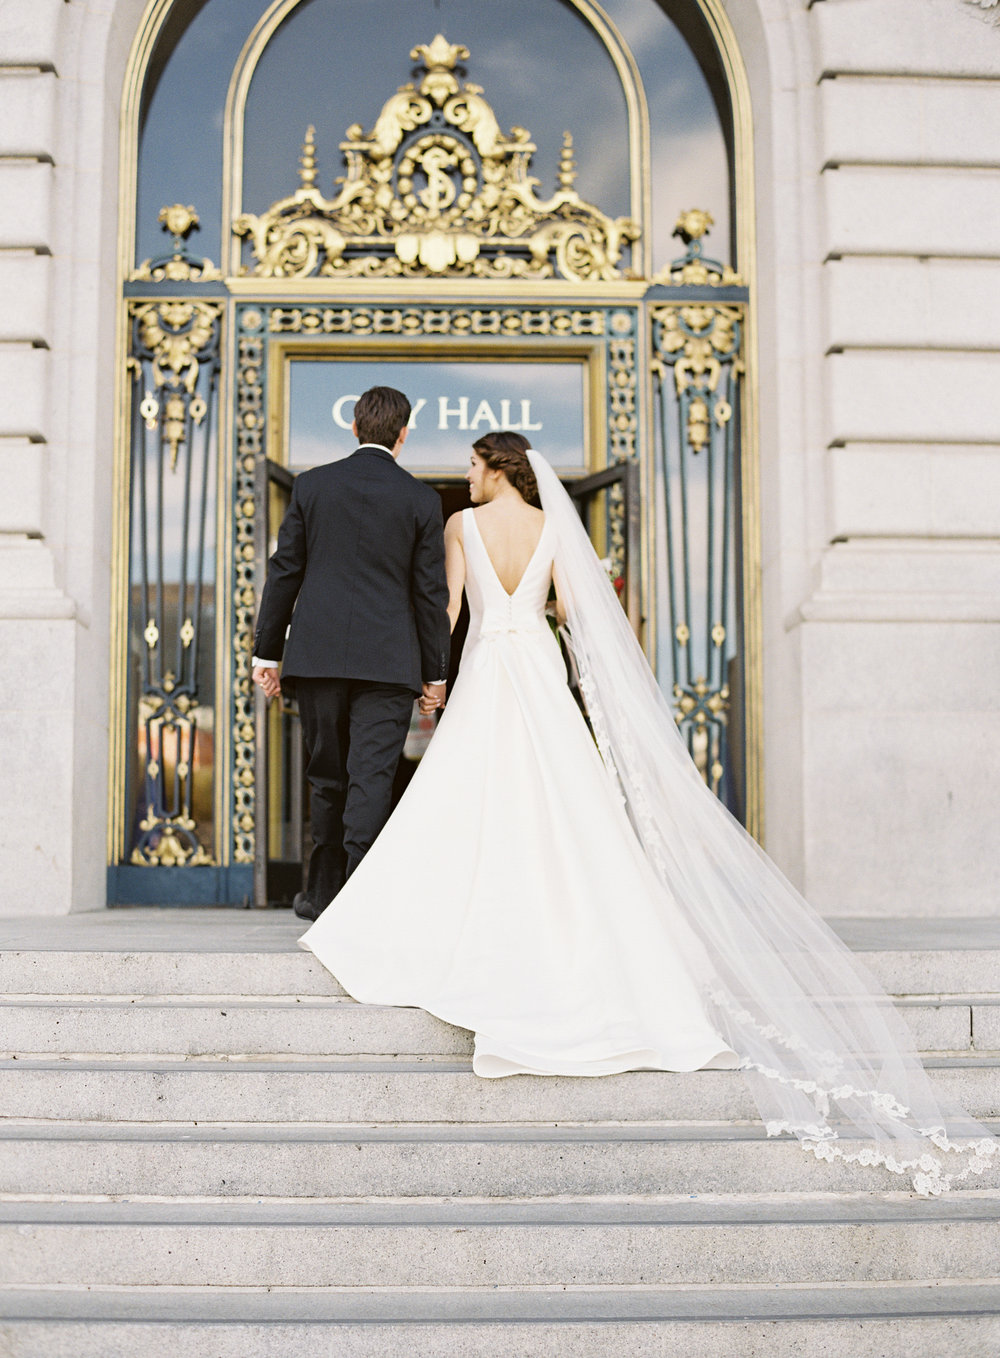 Meghan Mehan Photography - California Wedding Photographer | San Francisco City Hall Wedding 049.jpg